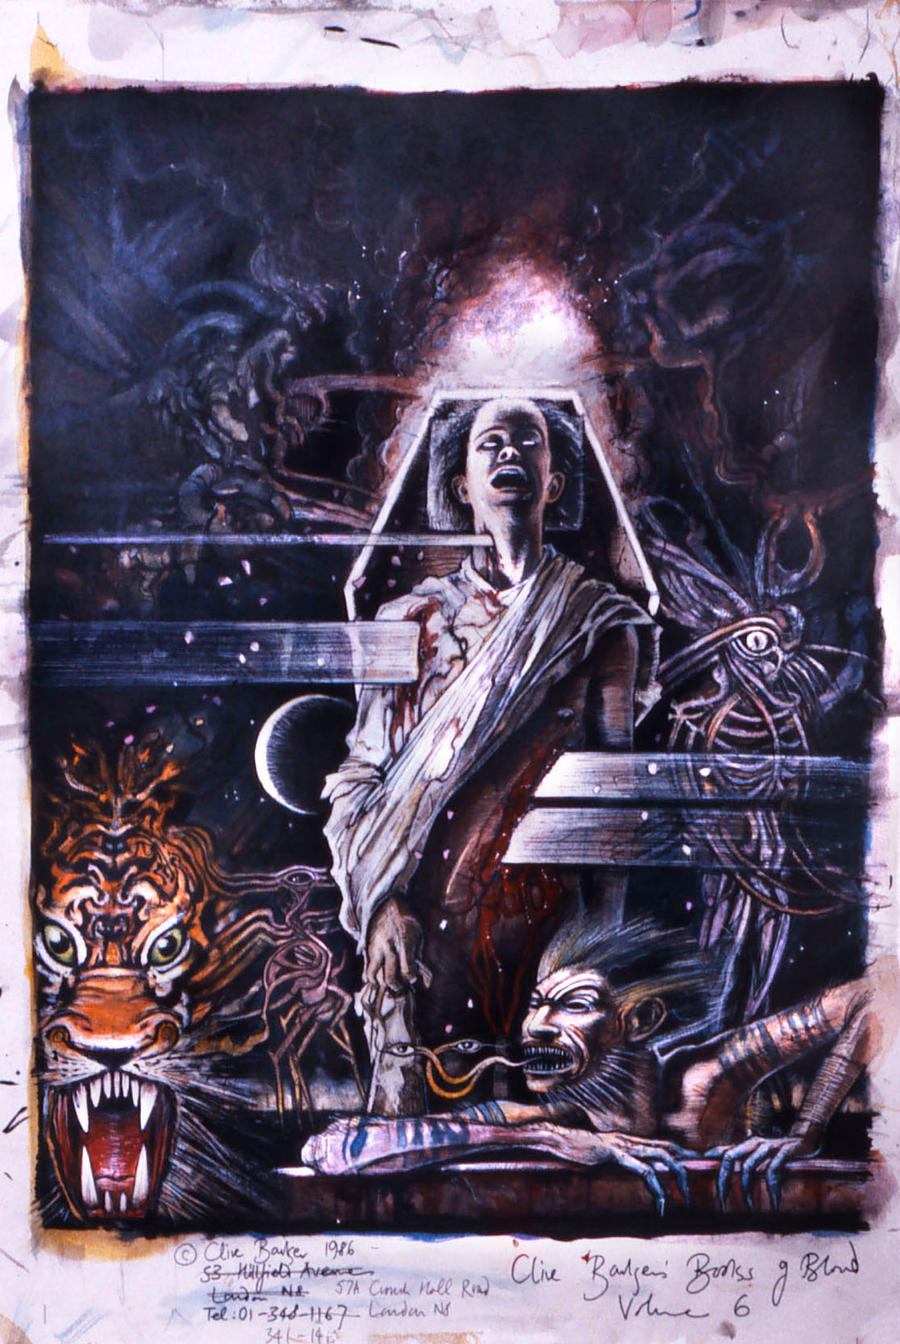 Books of Blood Vol 6 by CliveBarker